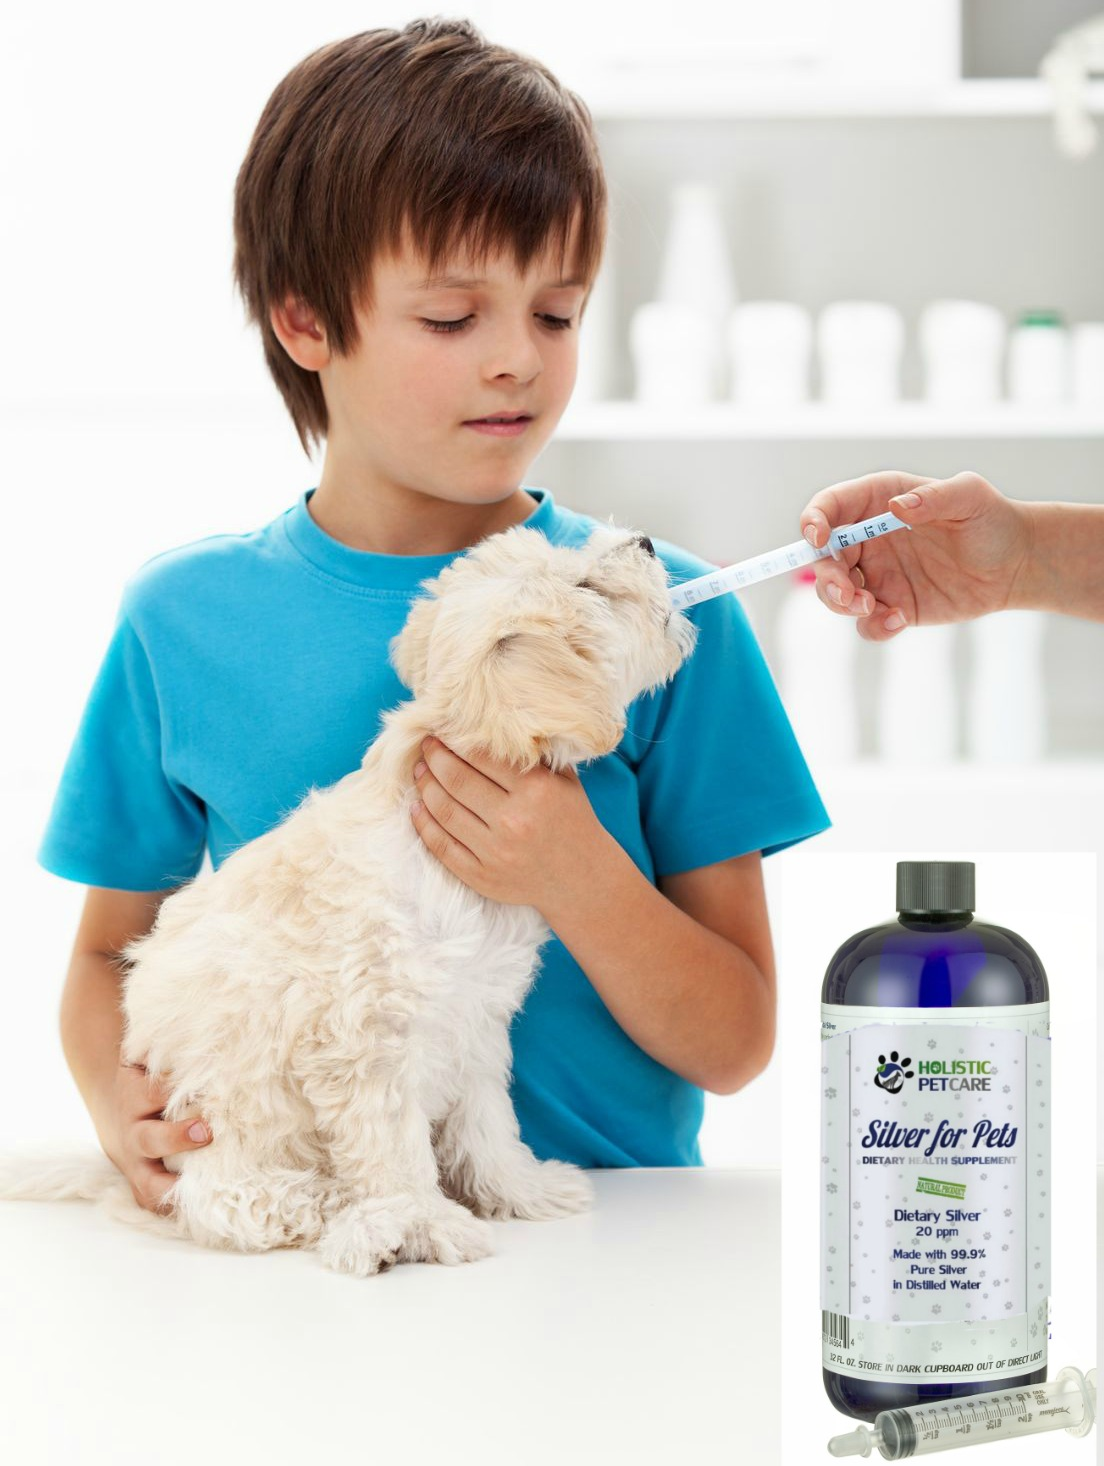 Colloidal Silver for Pets